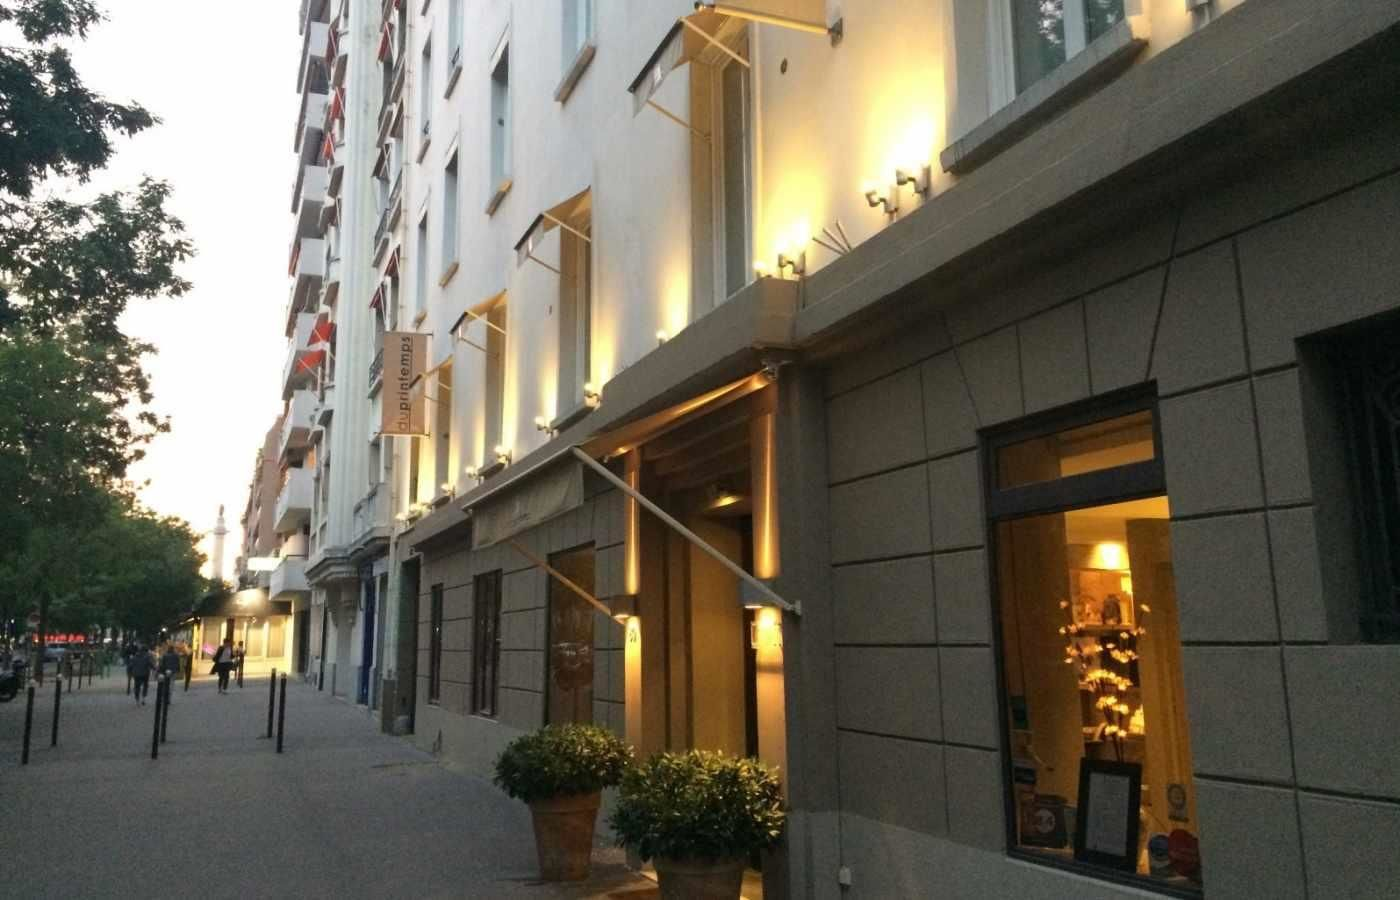 Le Printemps Paris Hotel Du Printemps Paris Official Site 2 Star Charm Hotel